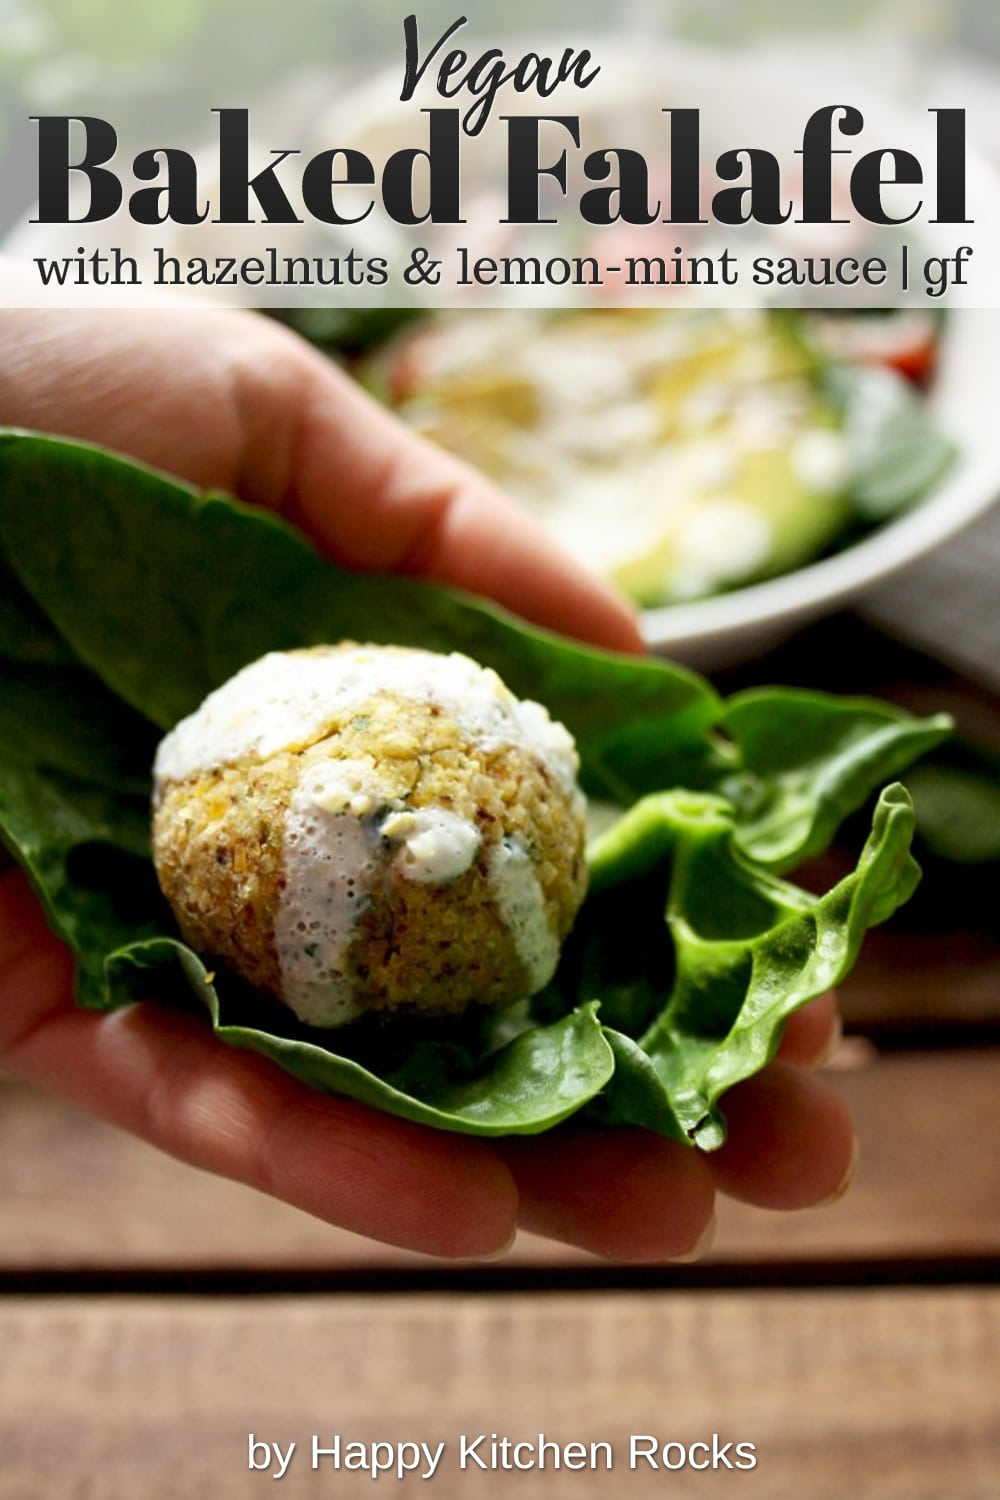 Crispy Baked Falafel with Hazelnuts and Creamy Lemon-Mint Sauce Hand Collage with Text Overlay